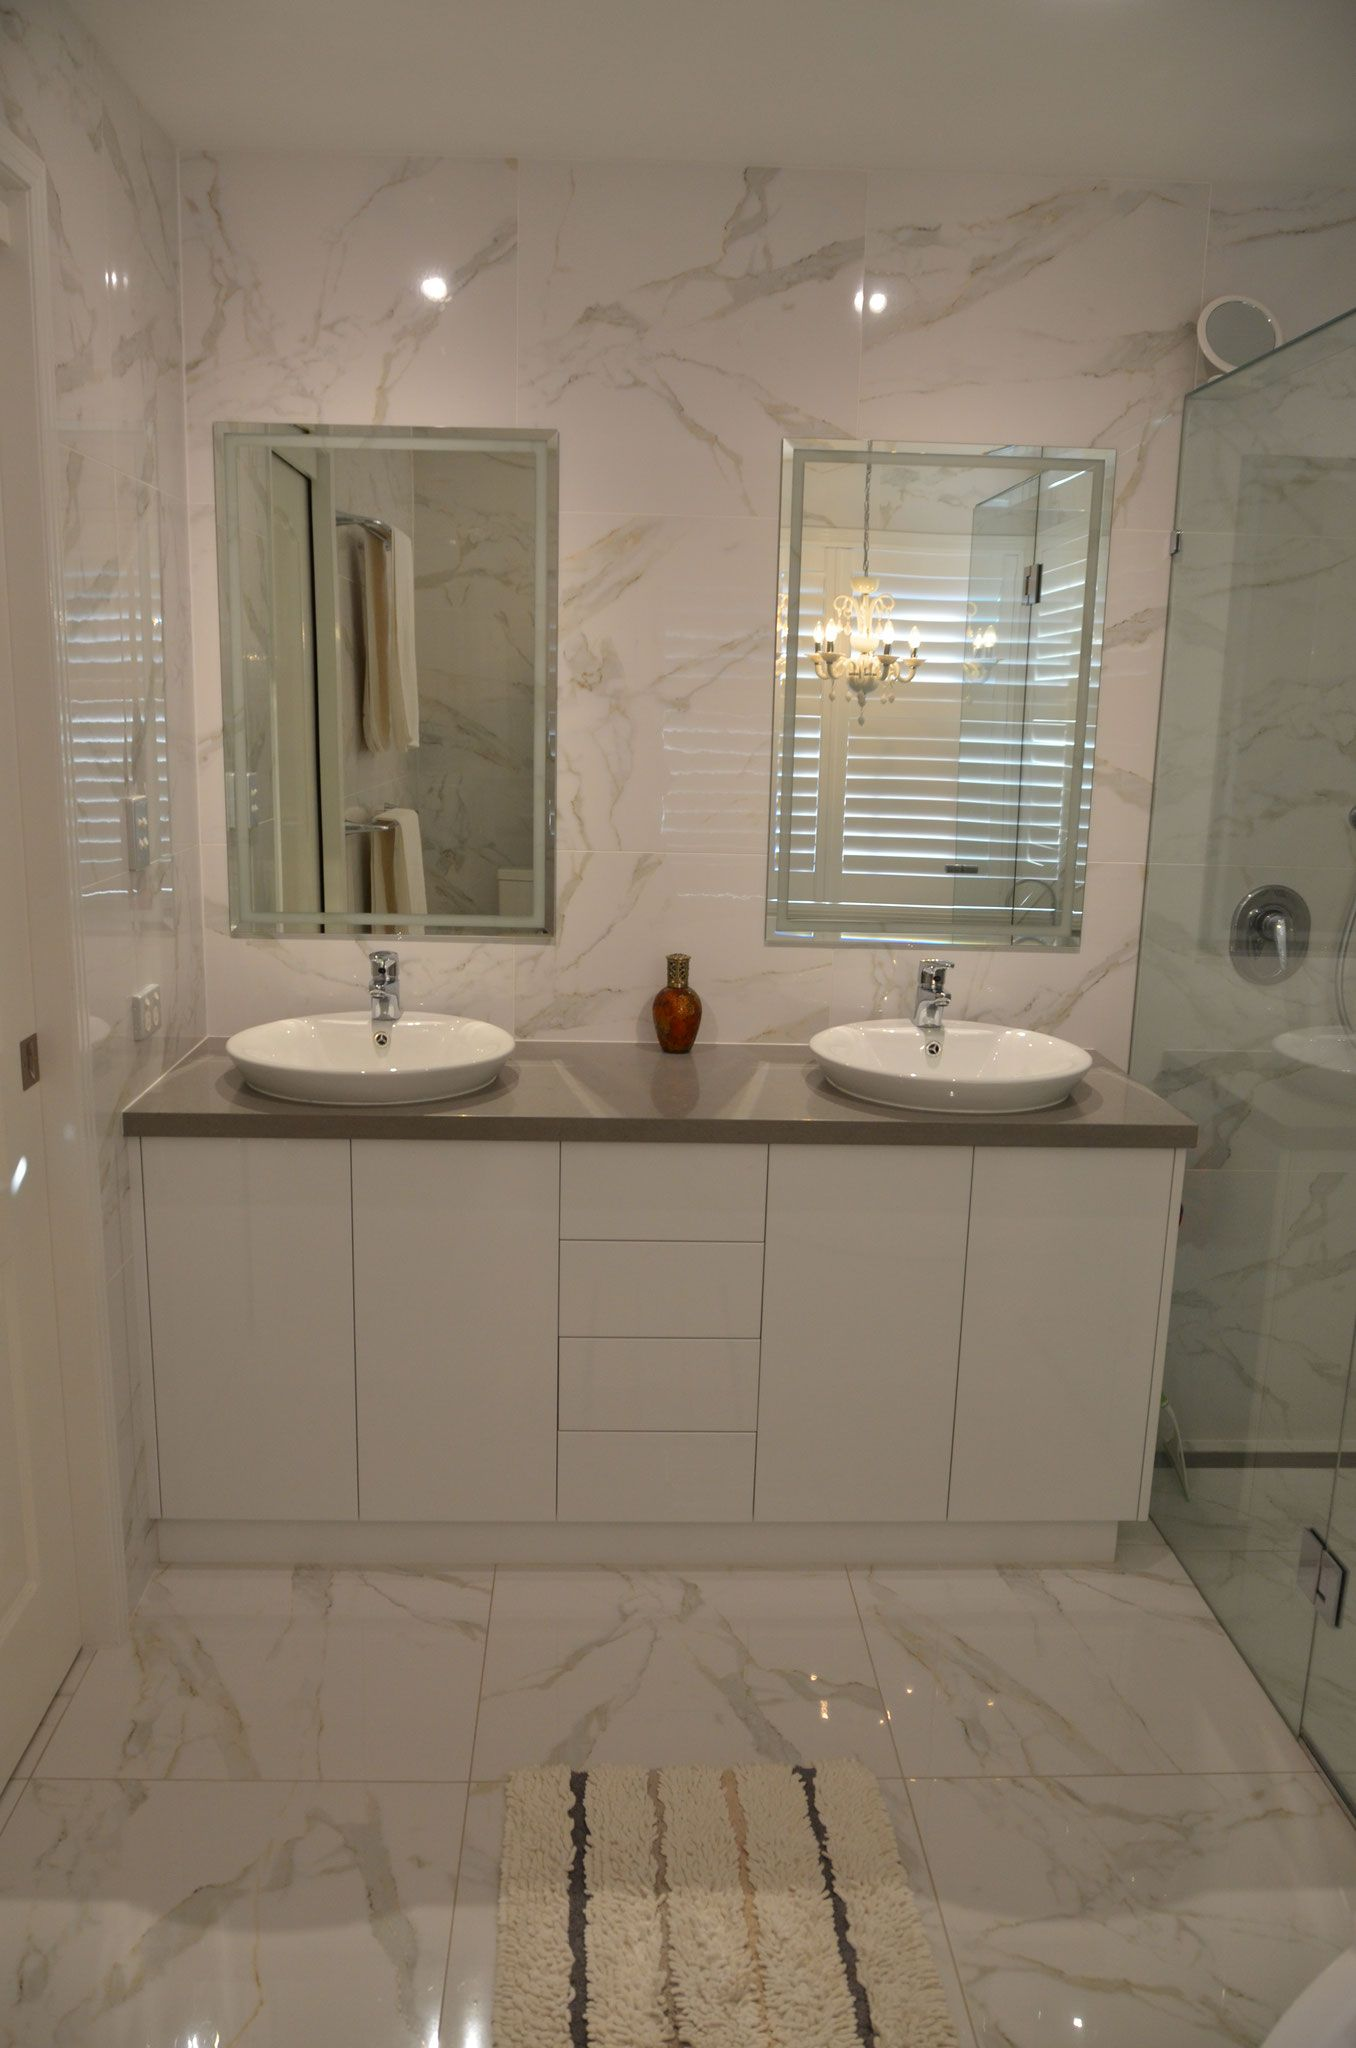 Large Square Marble Tiles Not As Good Bathroom Floor Tiles Bathroom Tile Bathroom